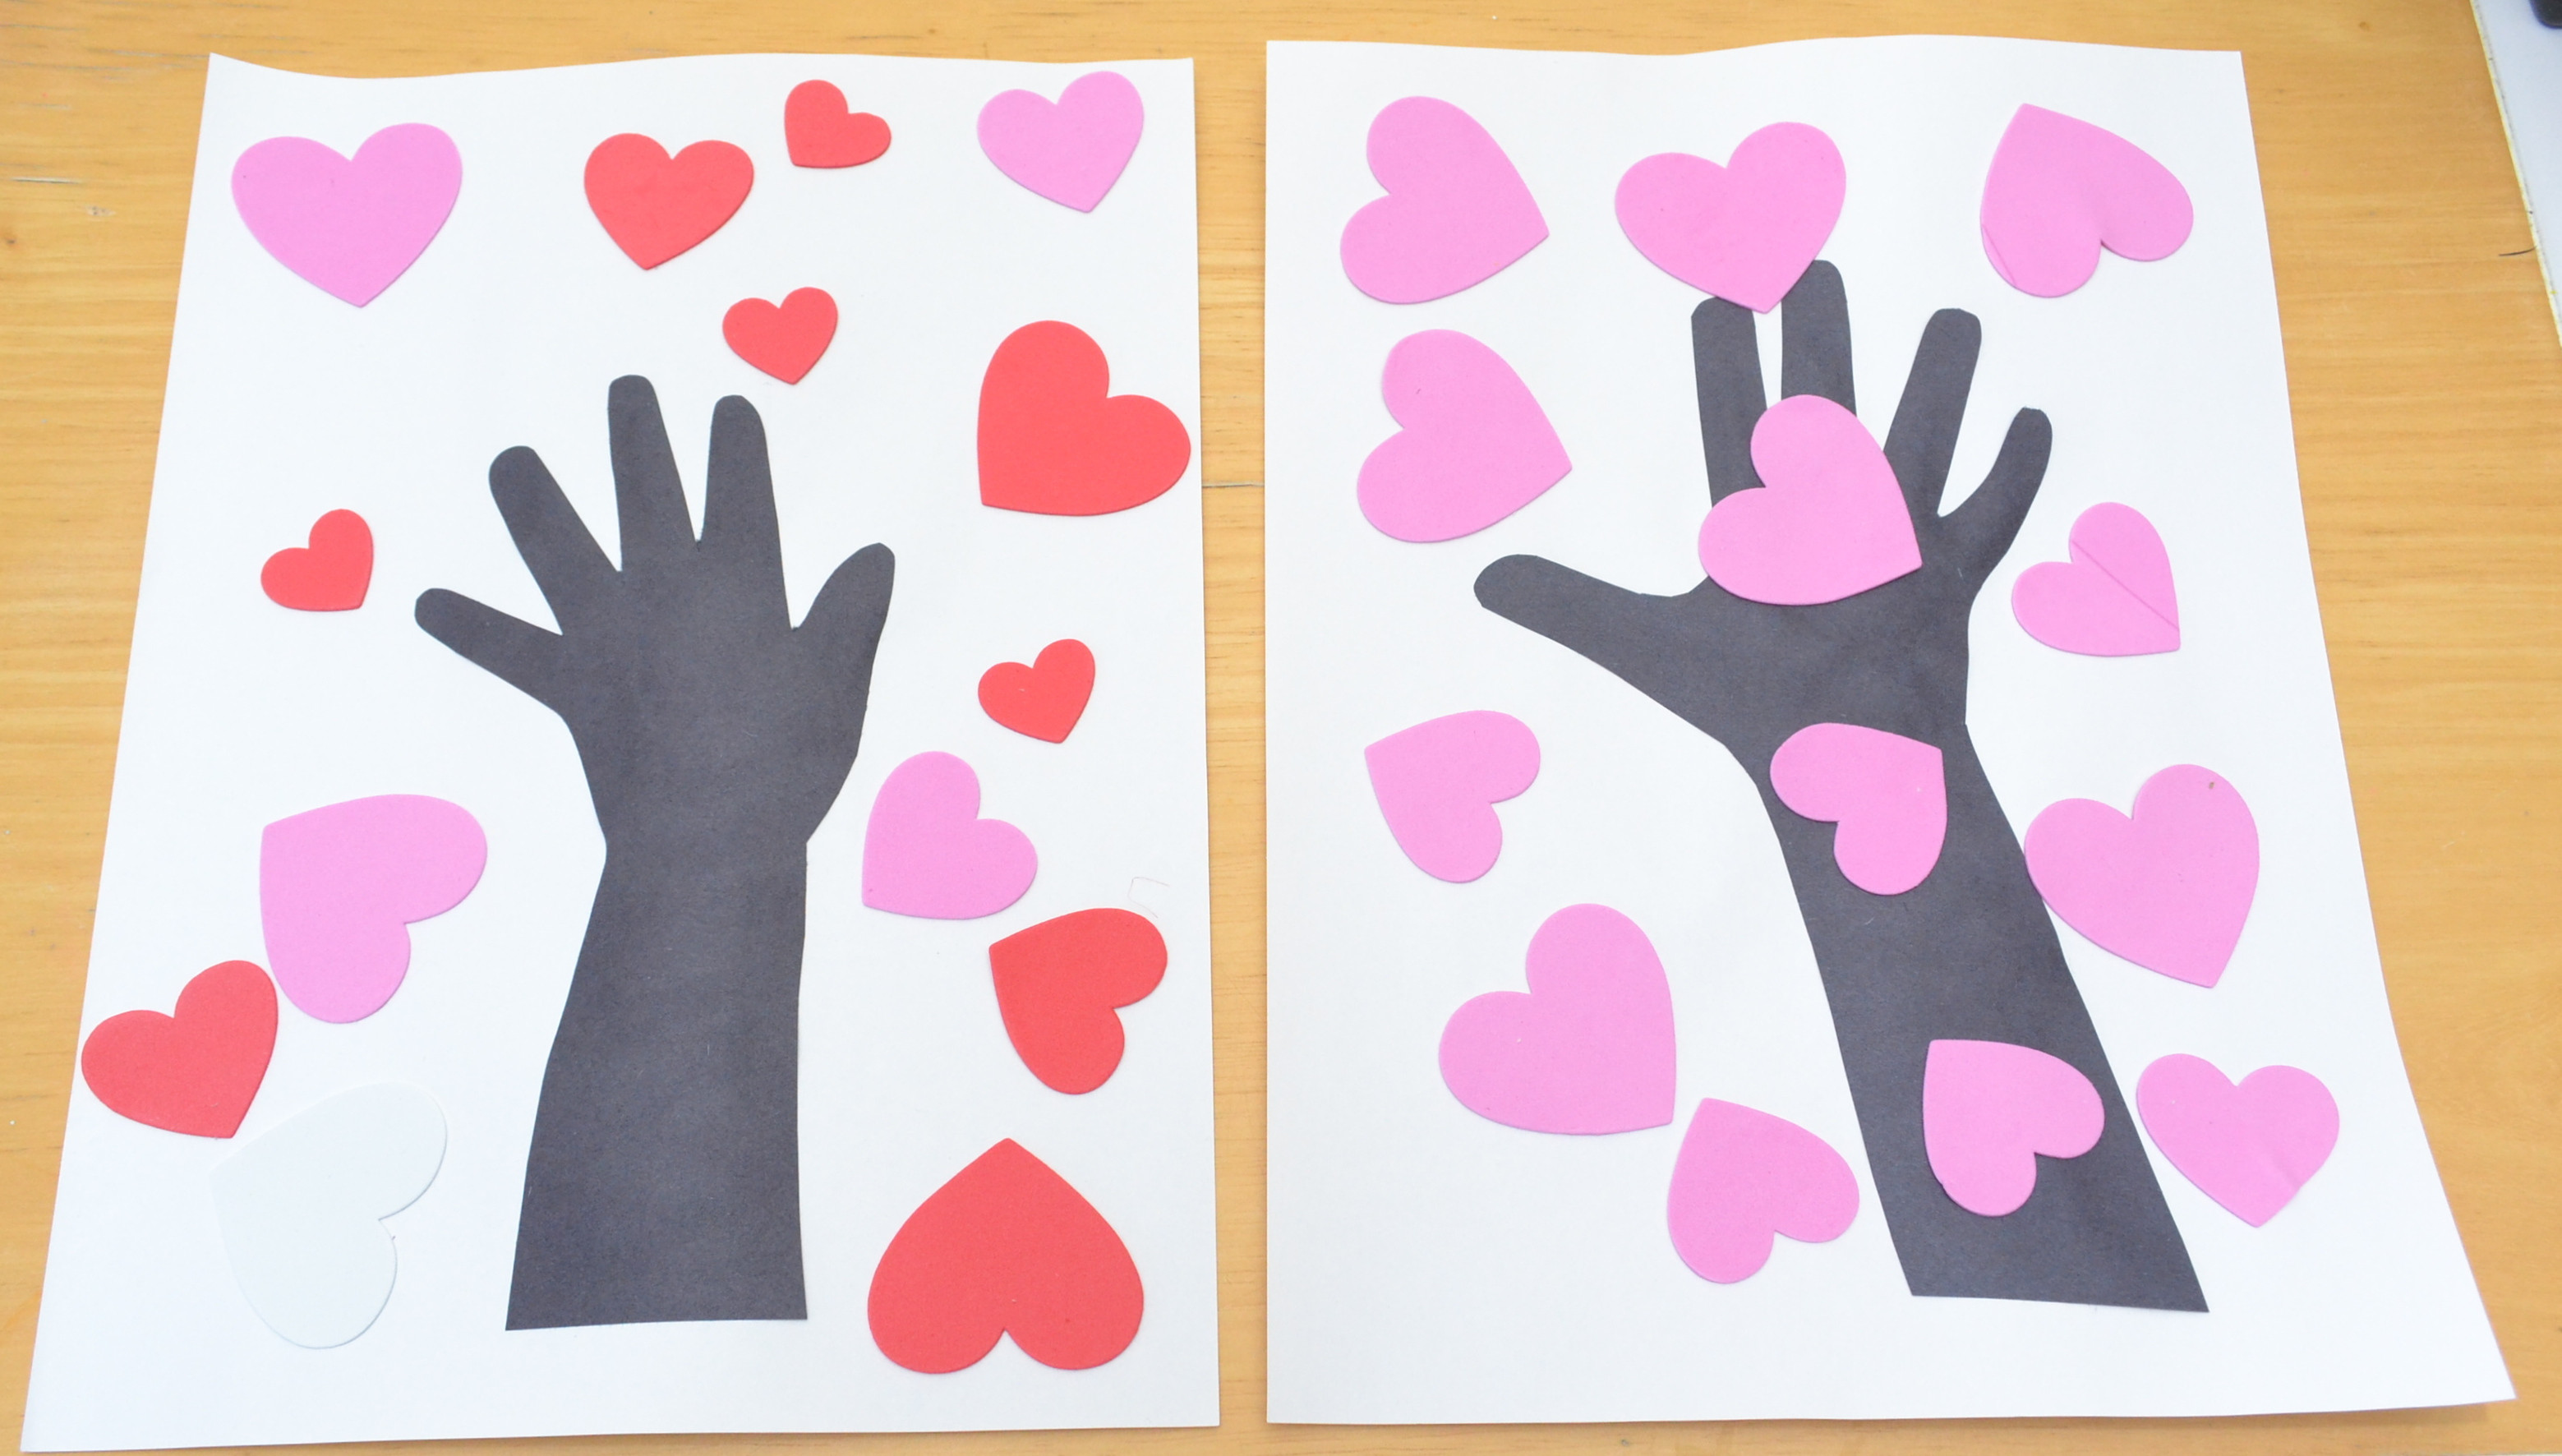 Best ideas about Valentine Crafts For Preschoolers To Make . Save or Pin 10 Valentines Day Crafts For Preschoolers Now.